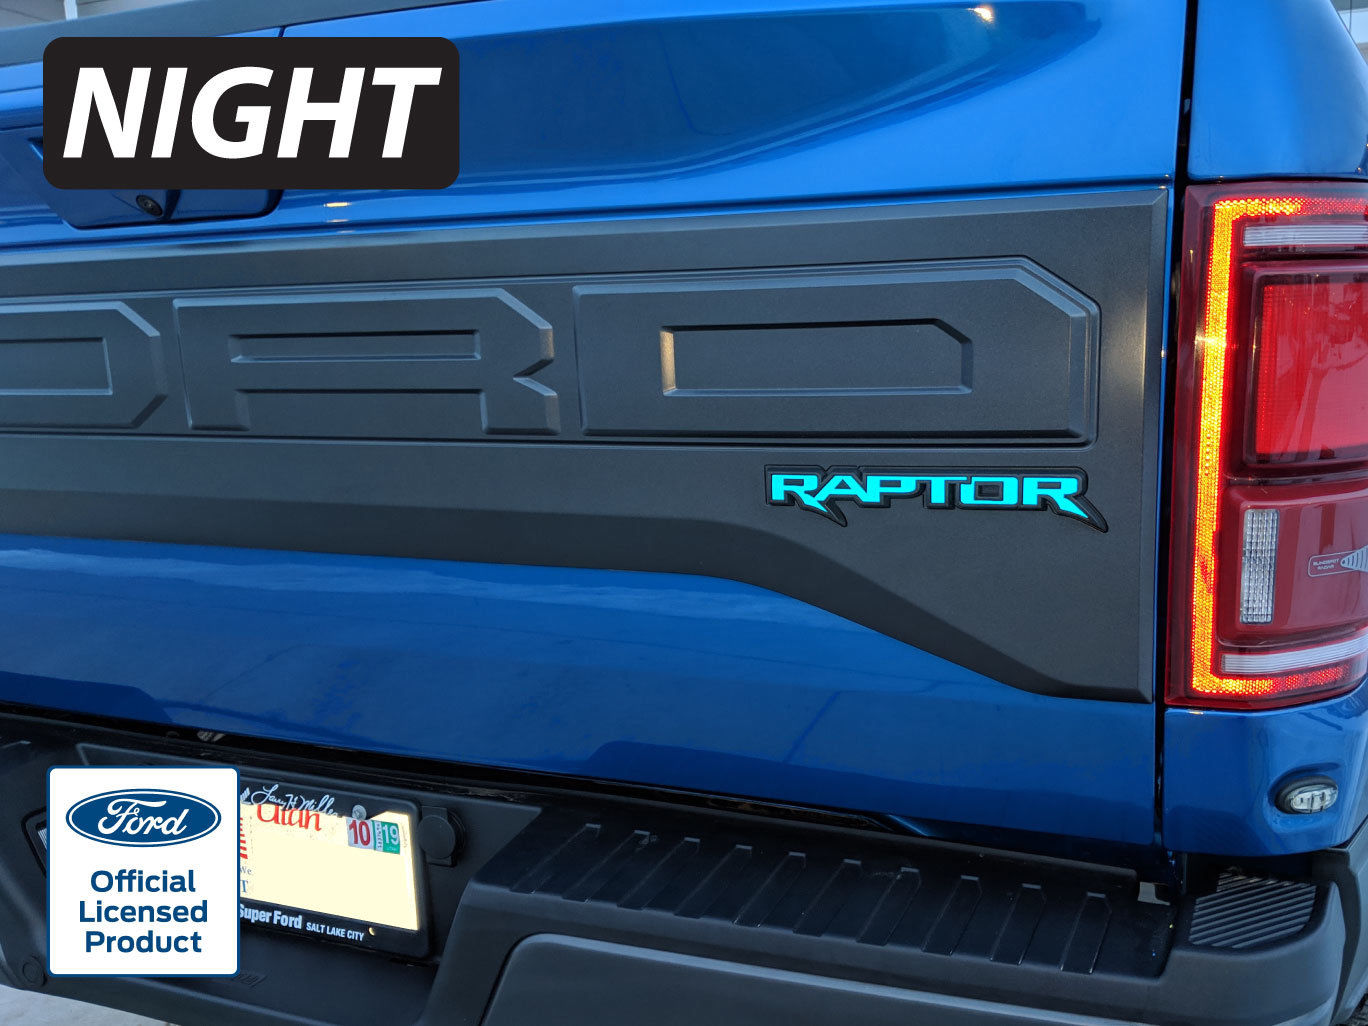 2017 2020 Ford Raptor Rear Emblem Reflective Inlay Decal Vinyl Graphics Stickers F150 Rocky Mountain Graphics